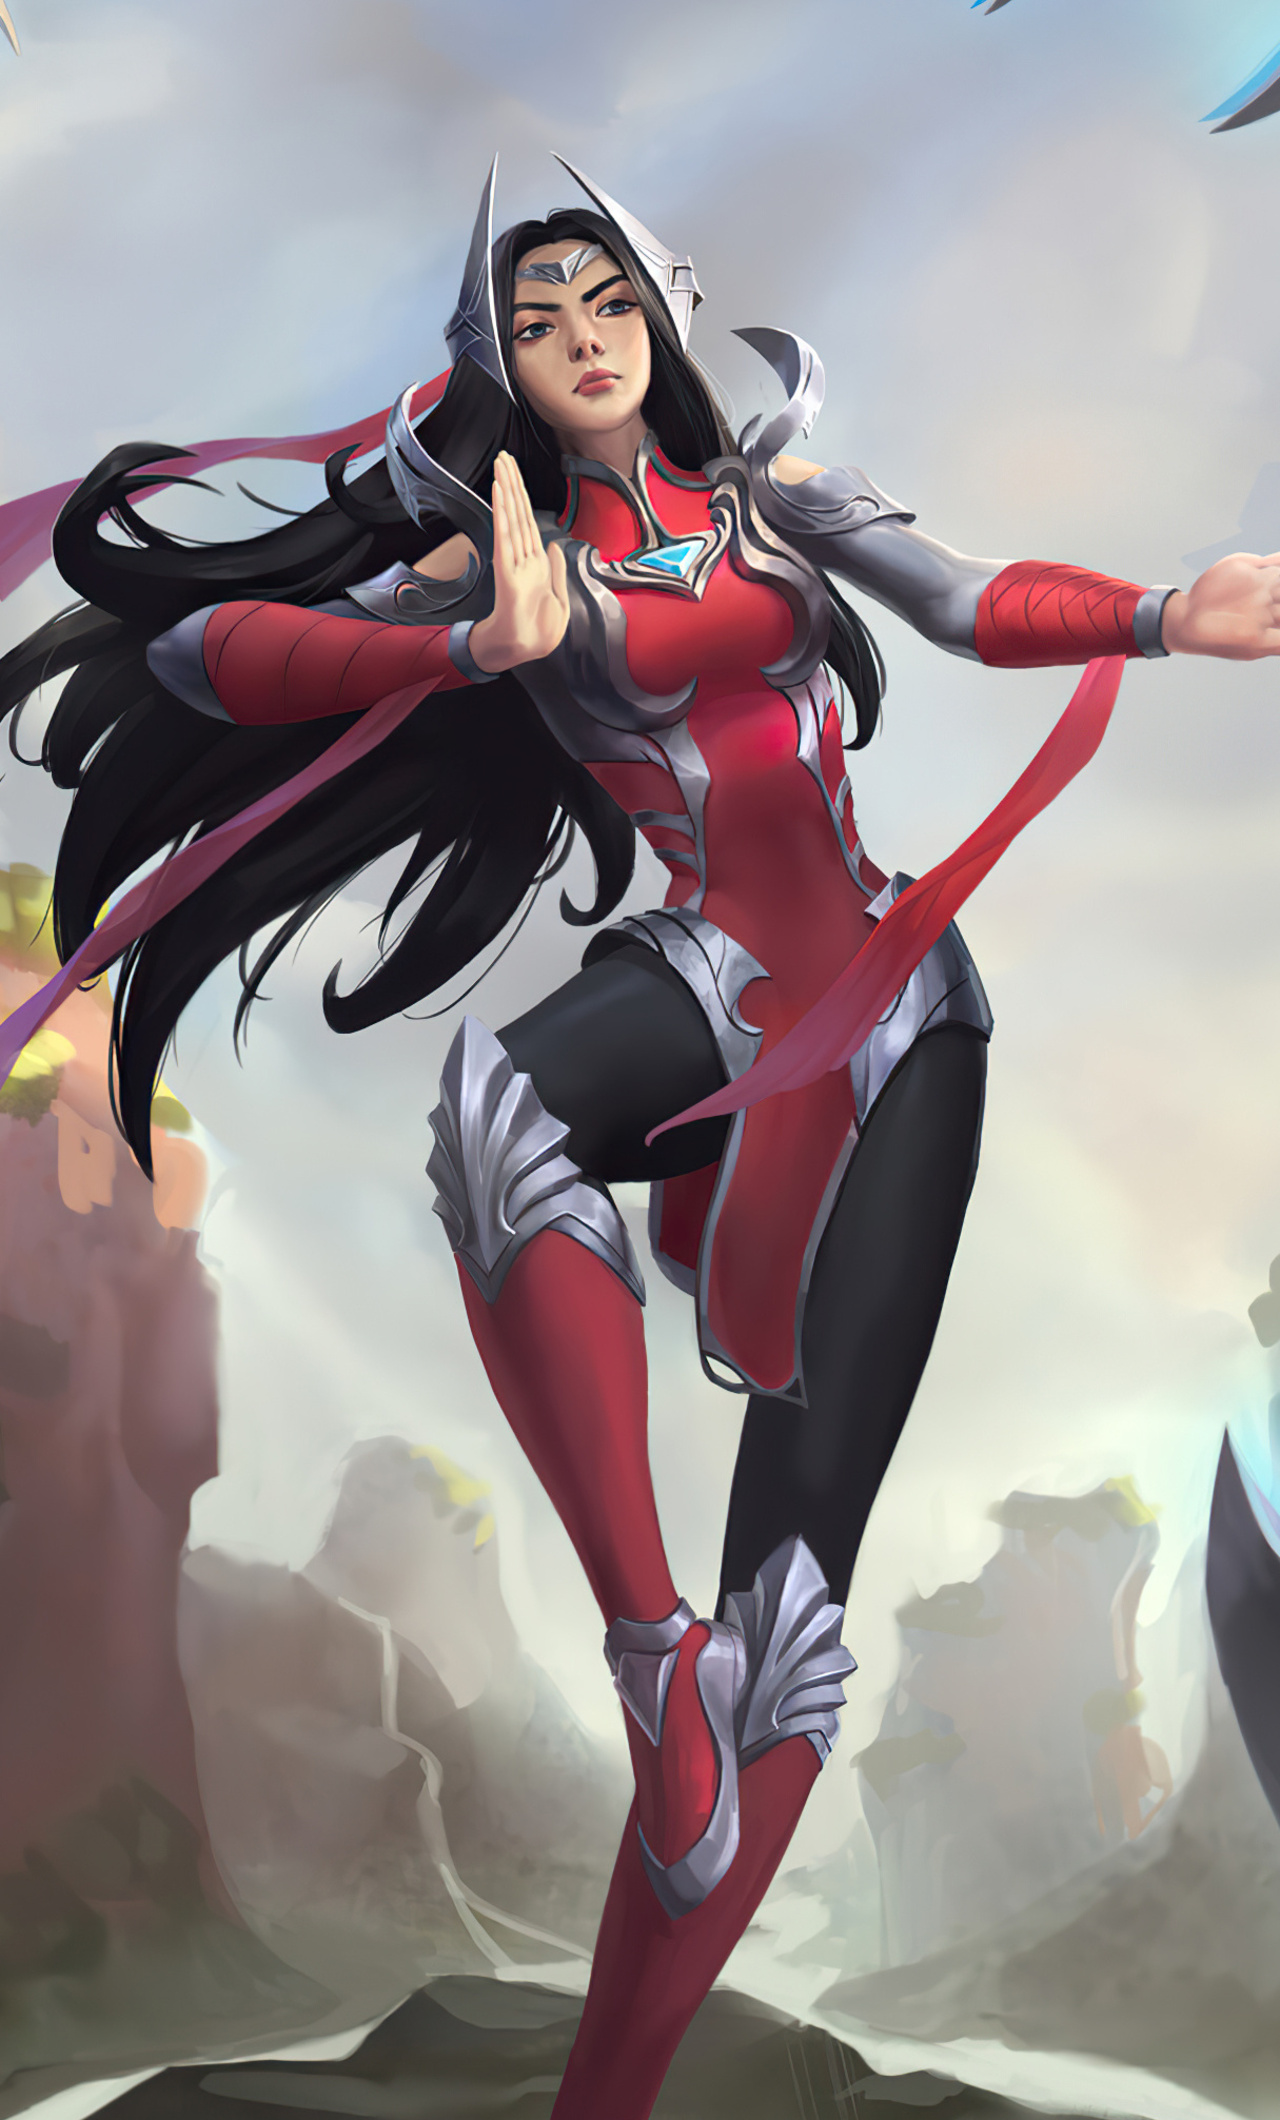 1280x2120 Irelia League Of Legends Fan Art 4k Iphone 6 Hd 4k Wallpapers Images Backgrounds Photos And Pictures